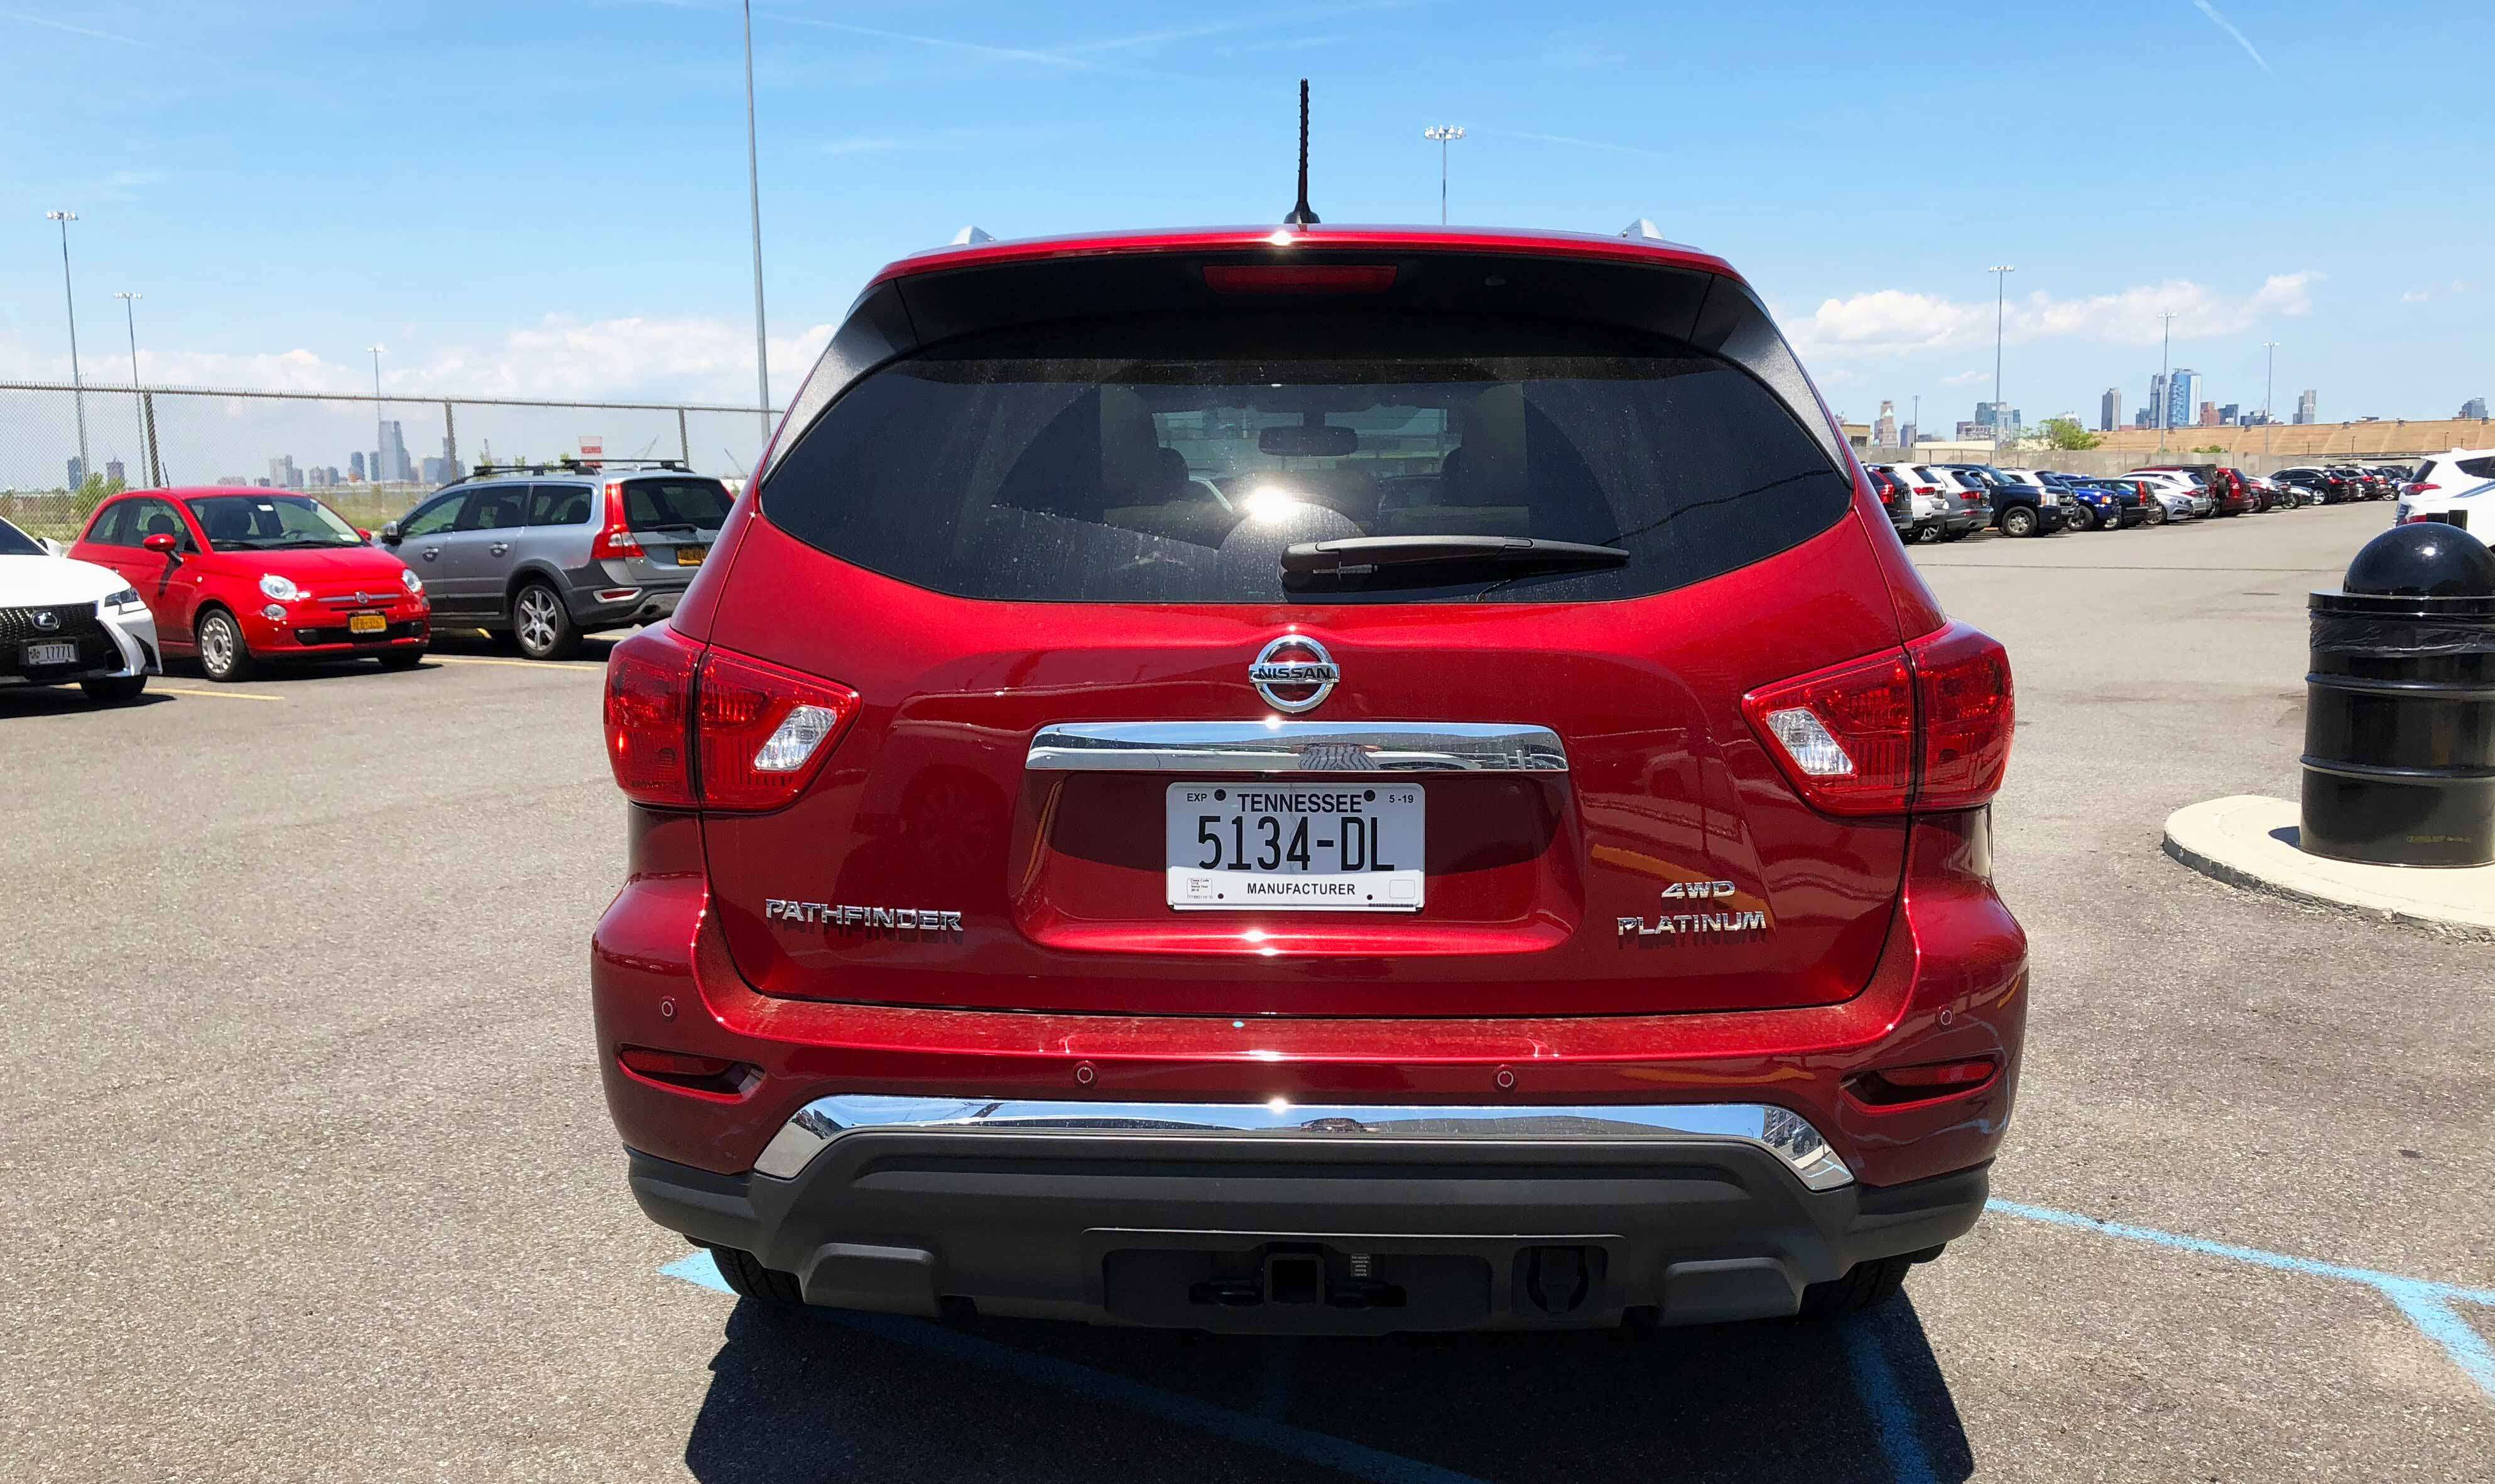 2018 Nissan Pathfinder Review The Very Model Of A Good Enough Suv